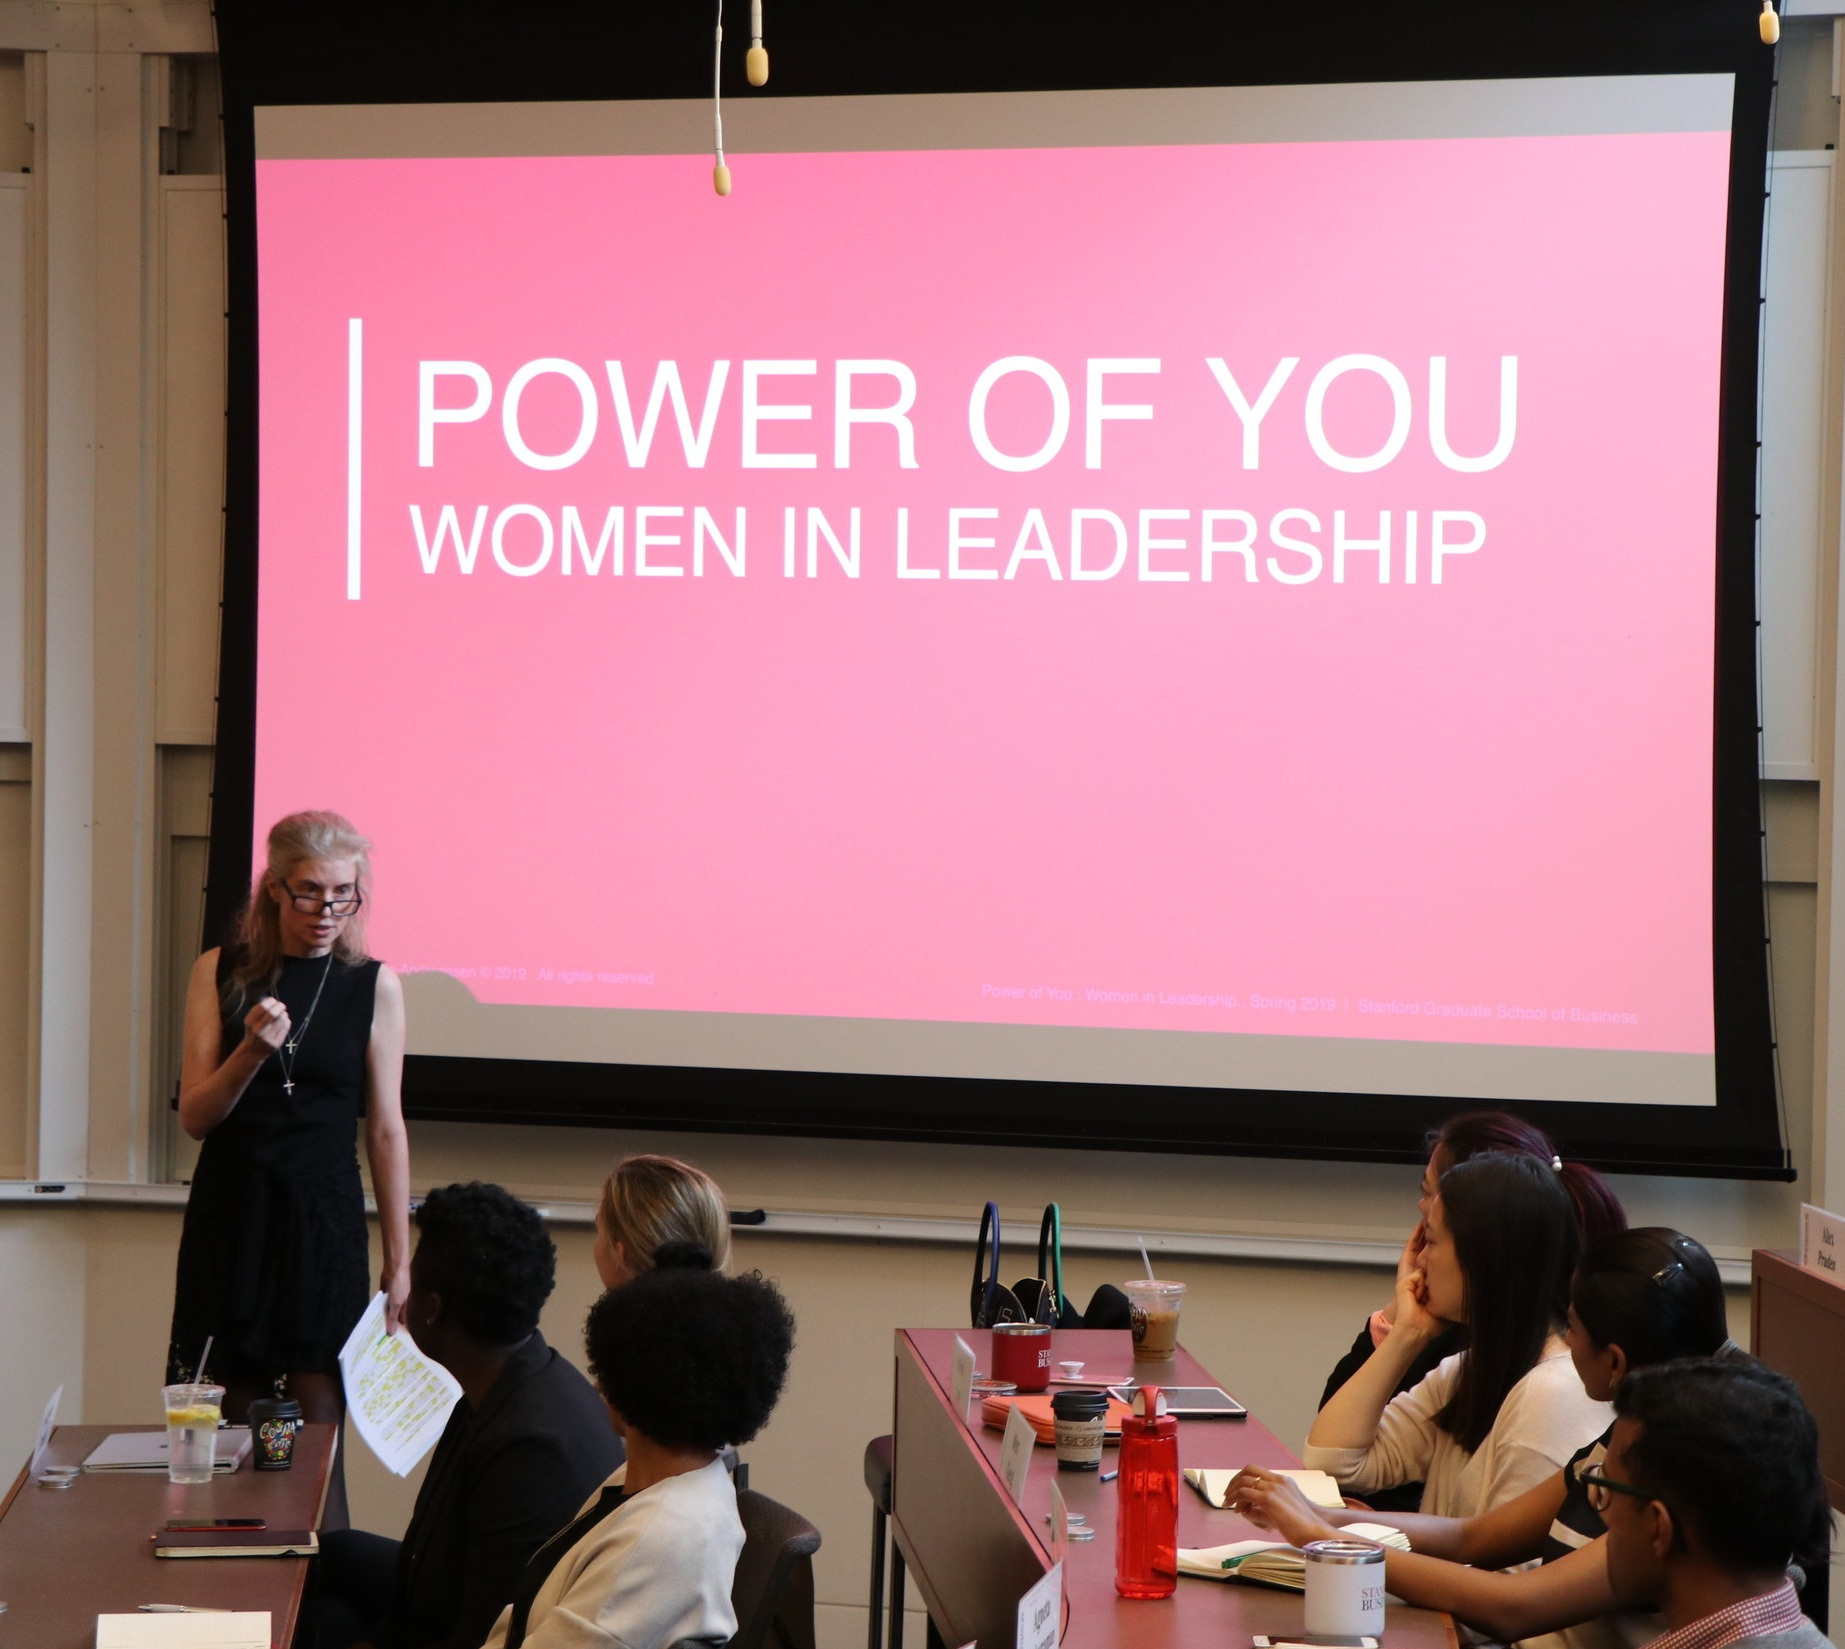 Laura Arrillaga-Andreessen teaching her Stanford Graduate School of Business course, Power of You: Women in Leadership, meant to empower and inspire the next generation of leaders.